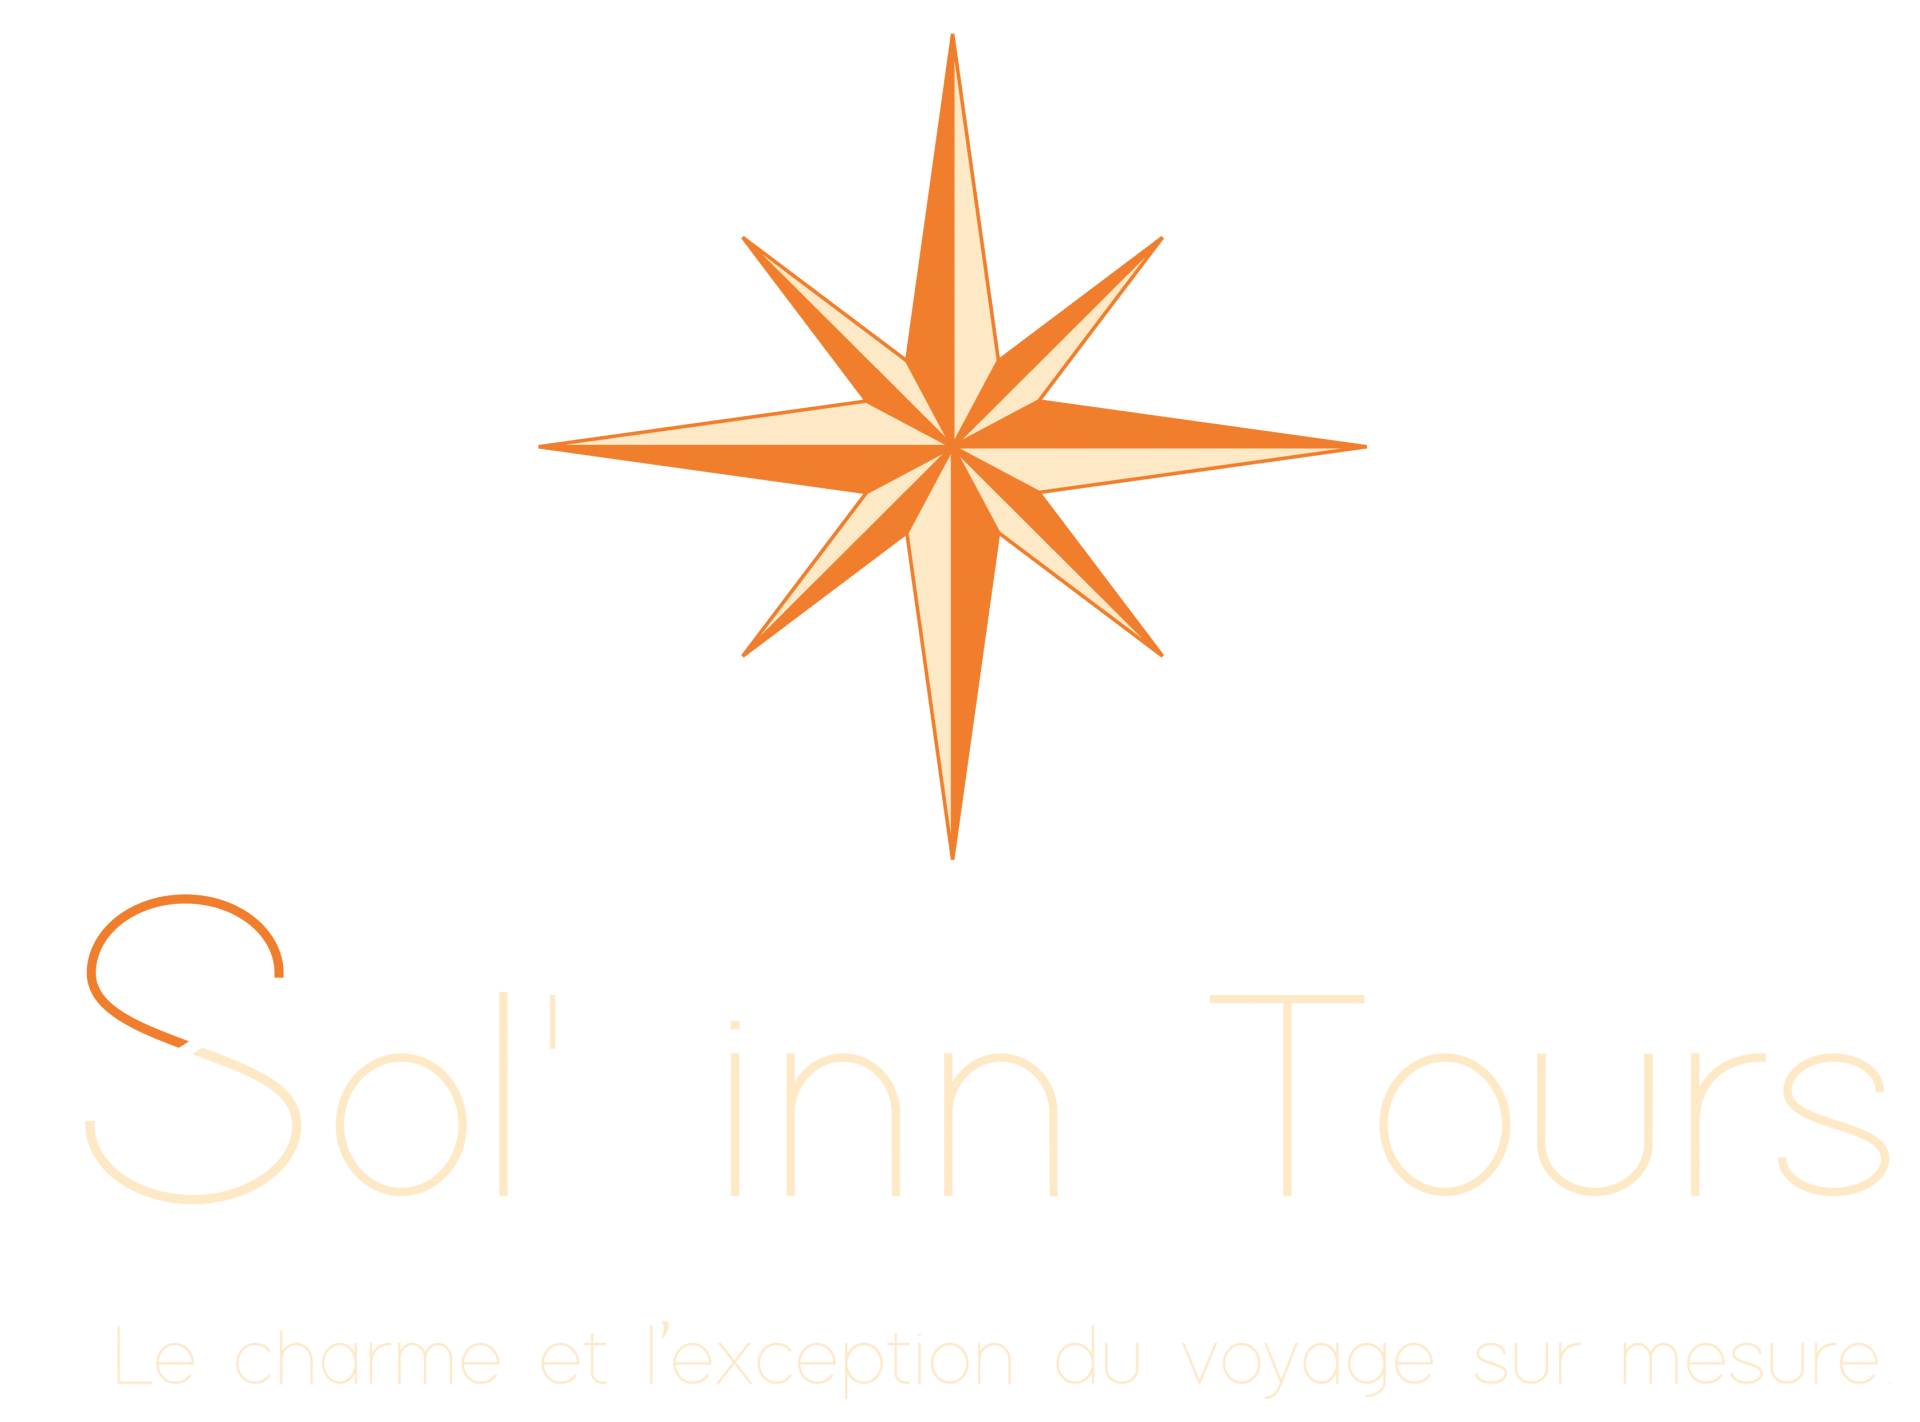 logo sol inn tours